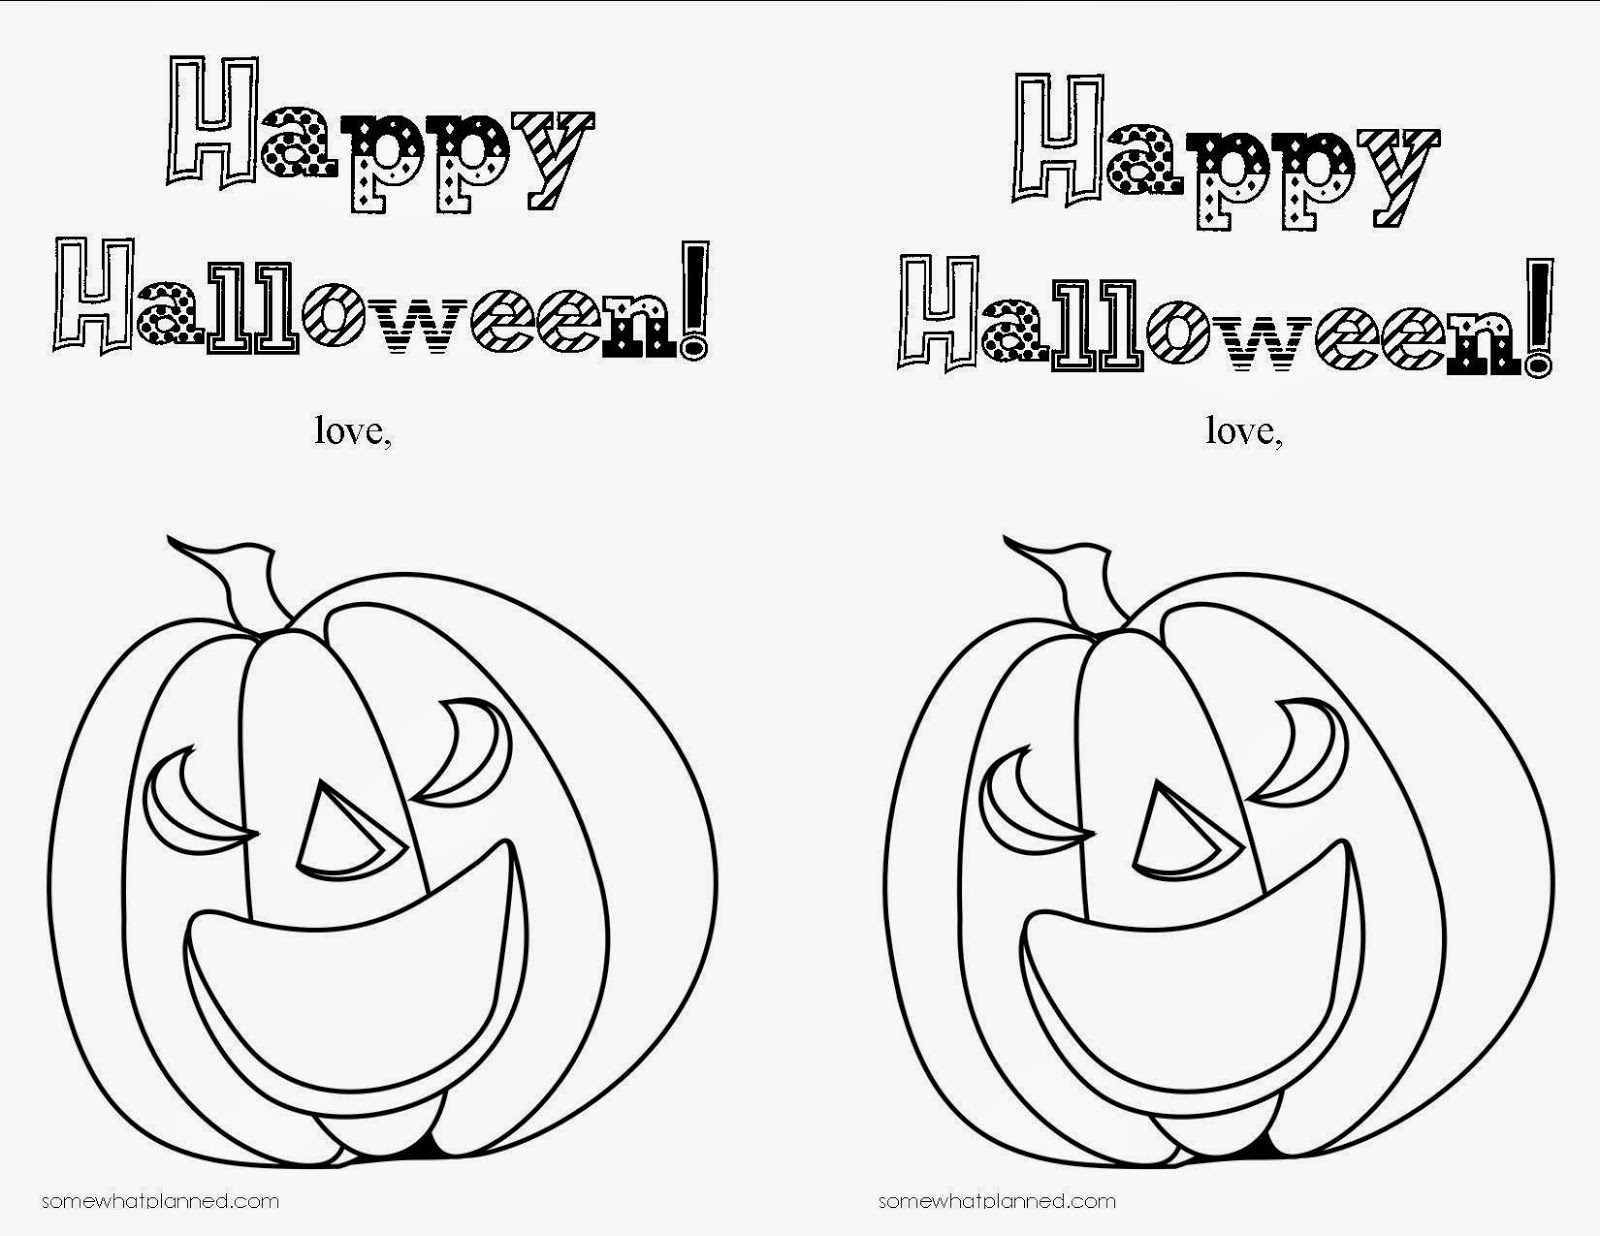 Adult Best Make Your Own Coloring Pages For Free Images cute make your own coloring pages and free printables somewhat planned images